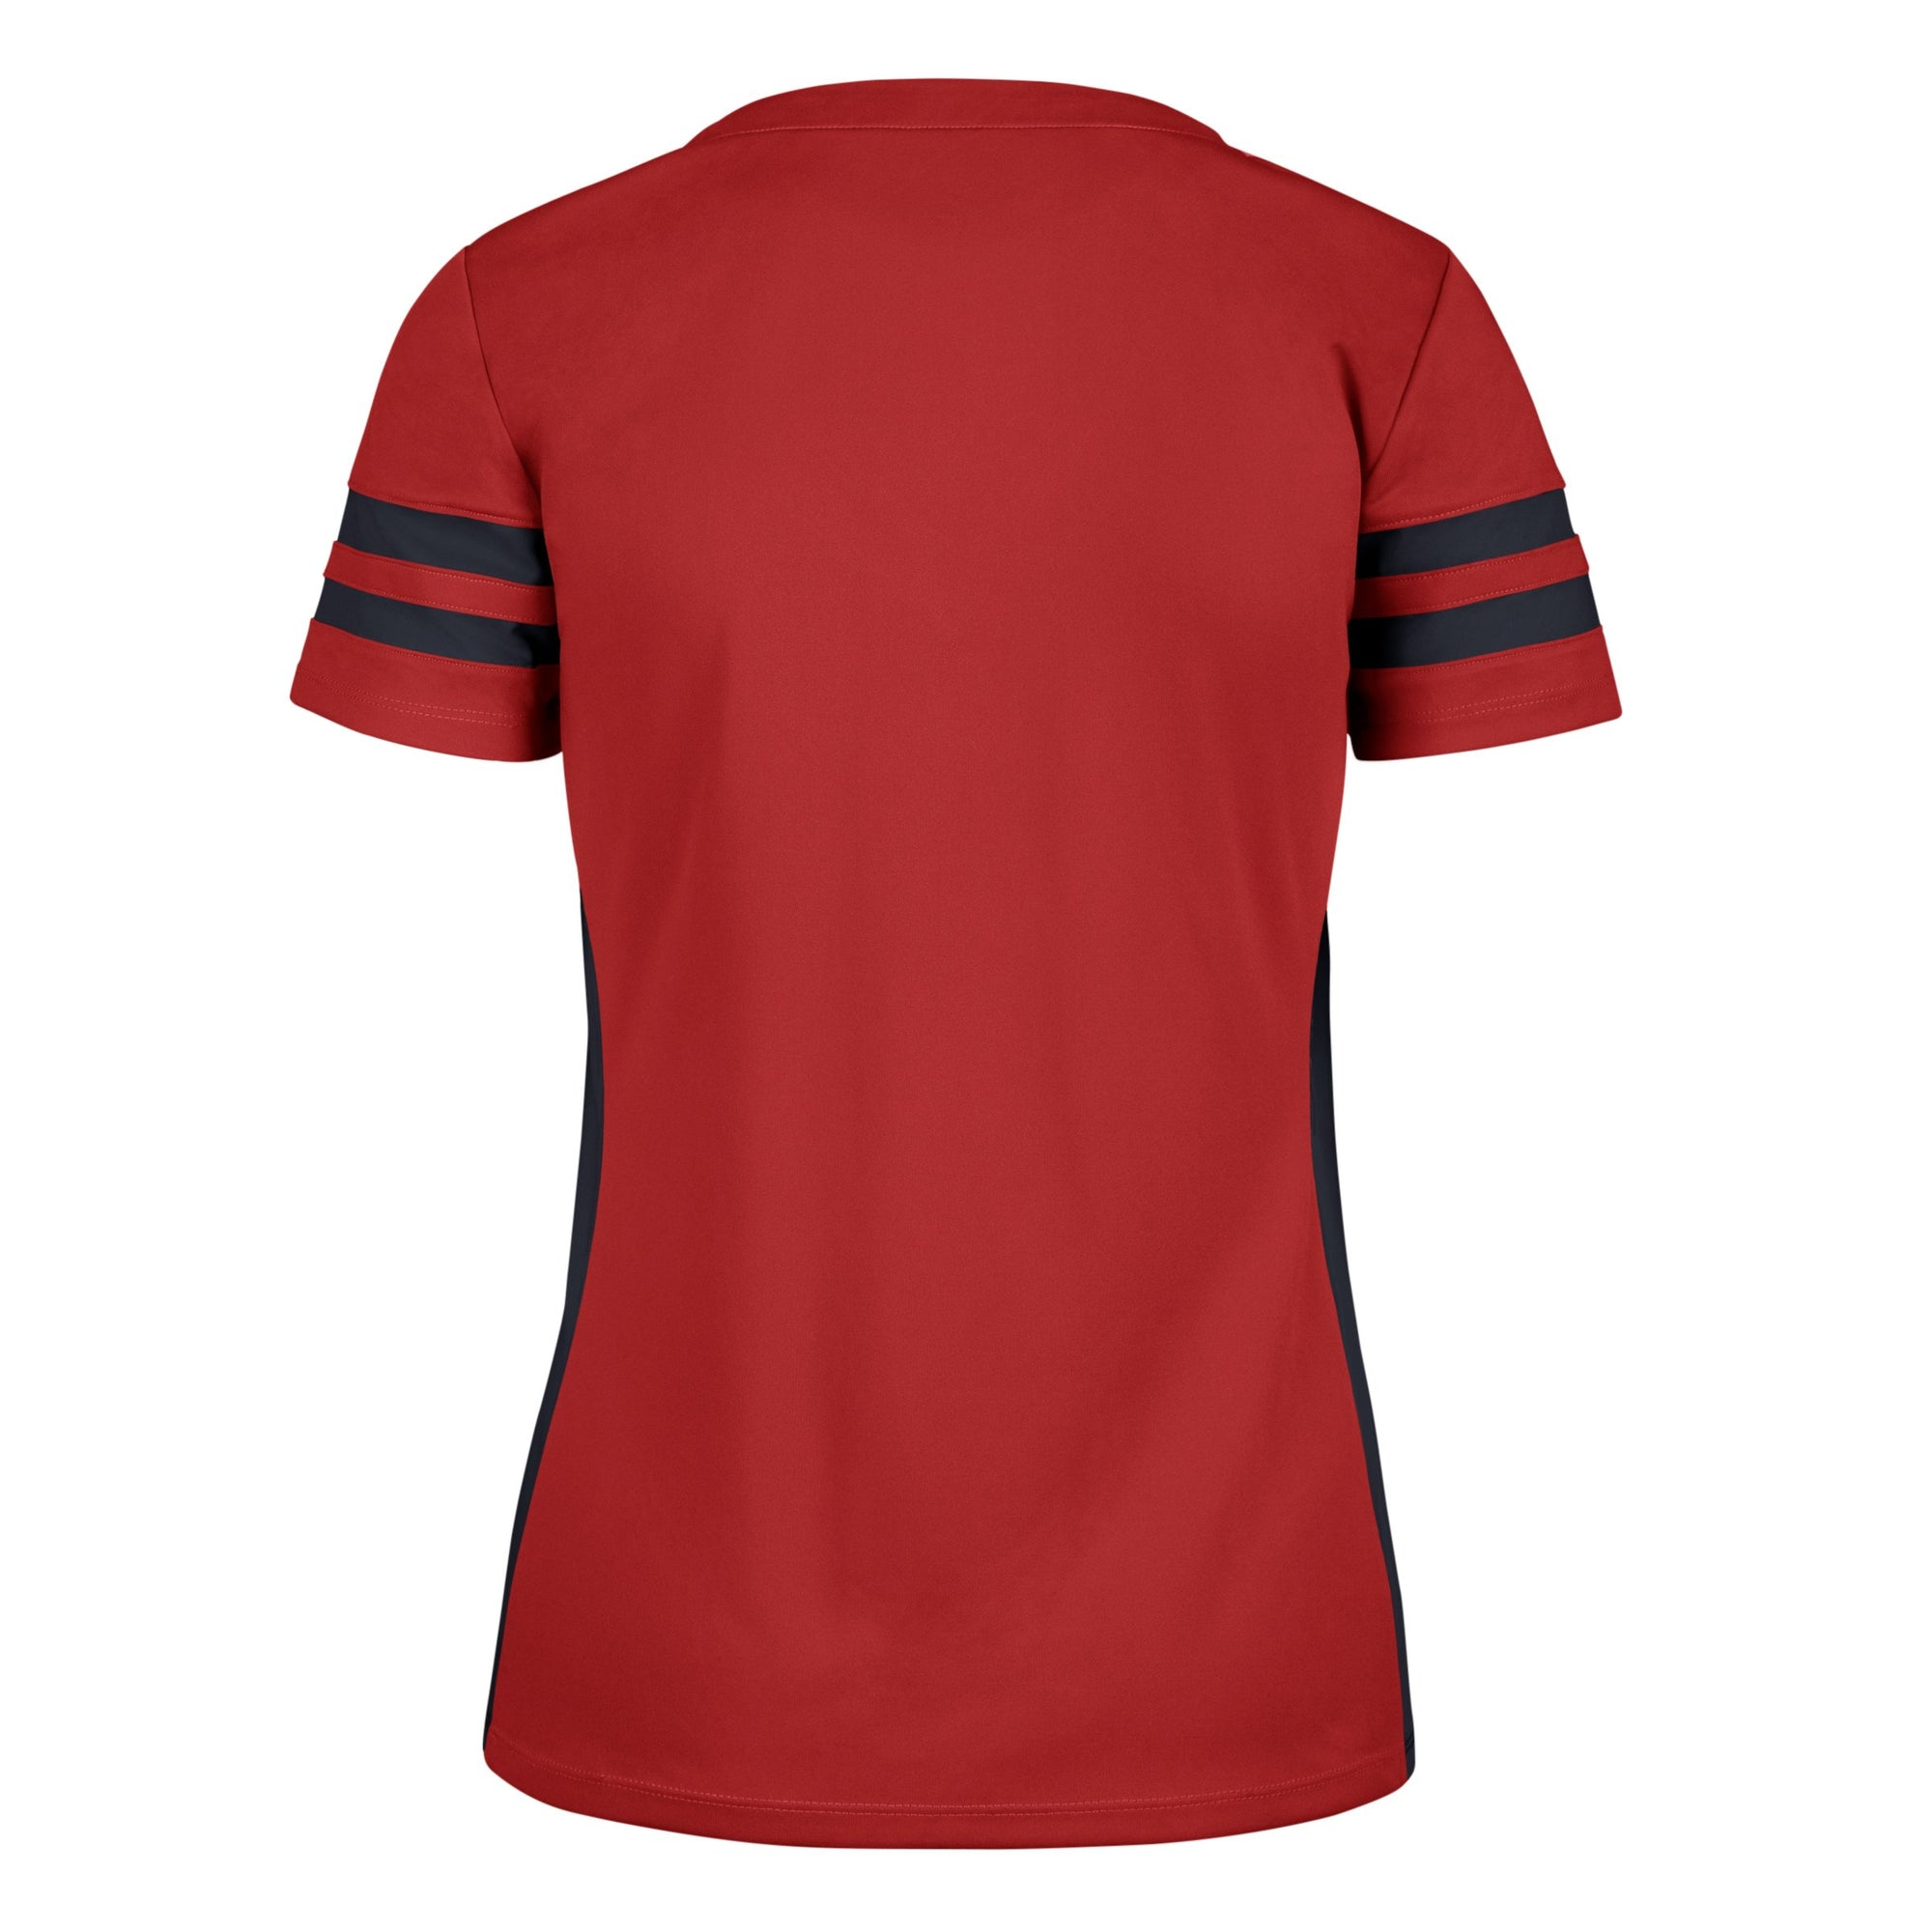 NCAA Arizona Wildcats Women's '47 Turnover Jersey V-Neck - Red